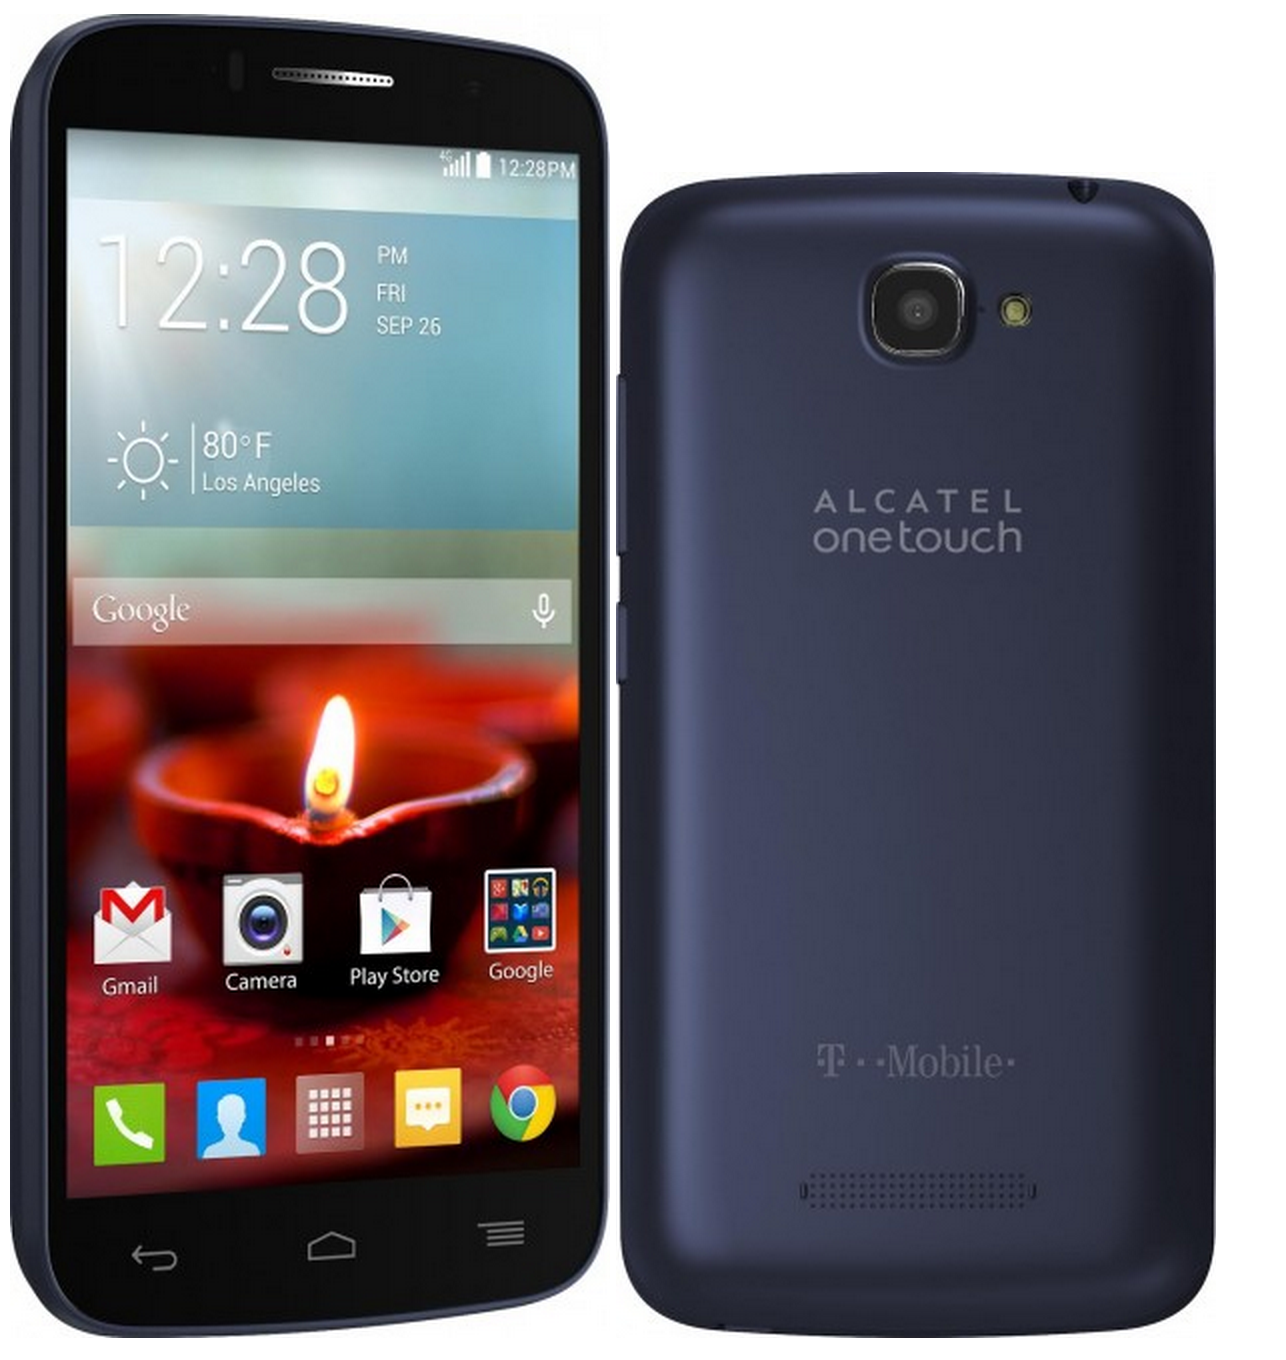 Alcatel One Touch Fierce 2 7040T for MetroPCS in Blue